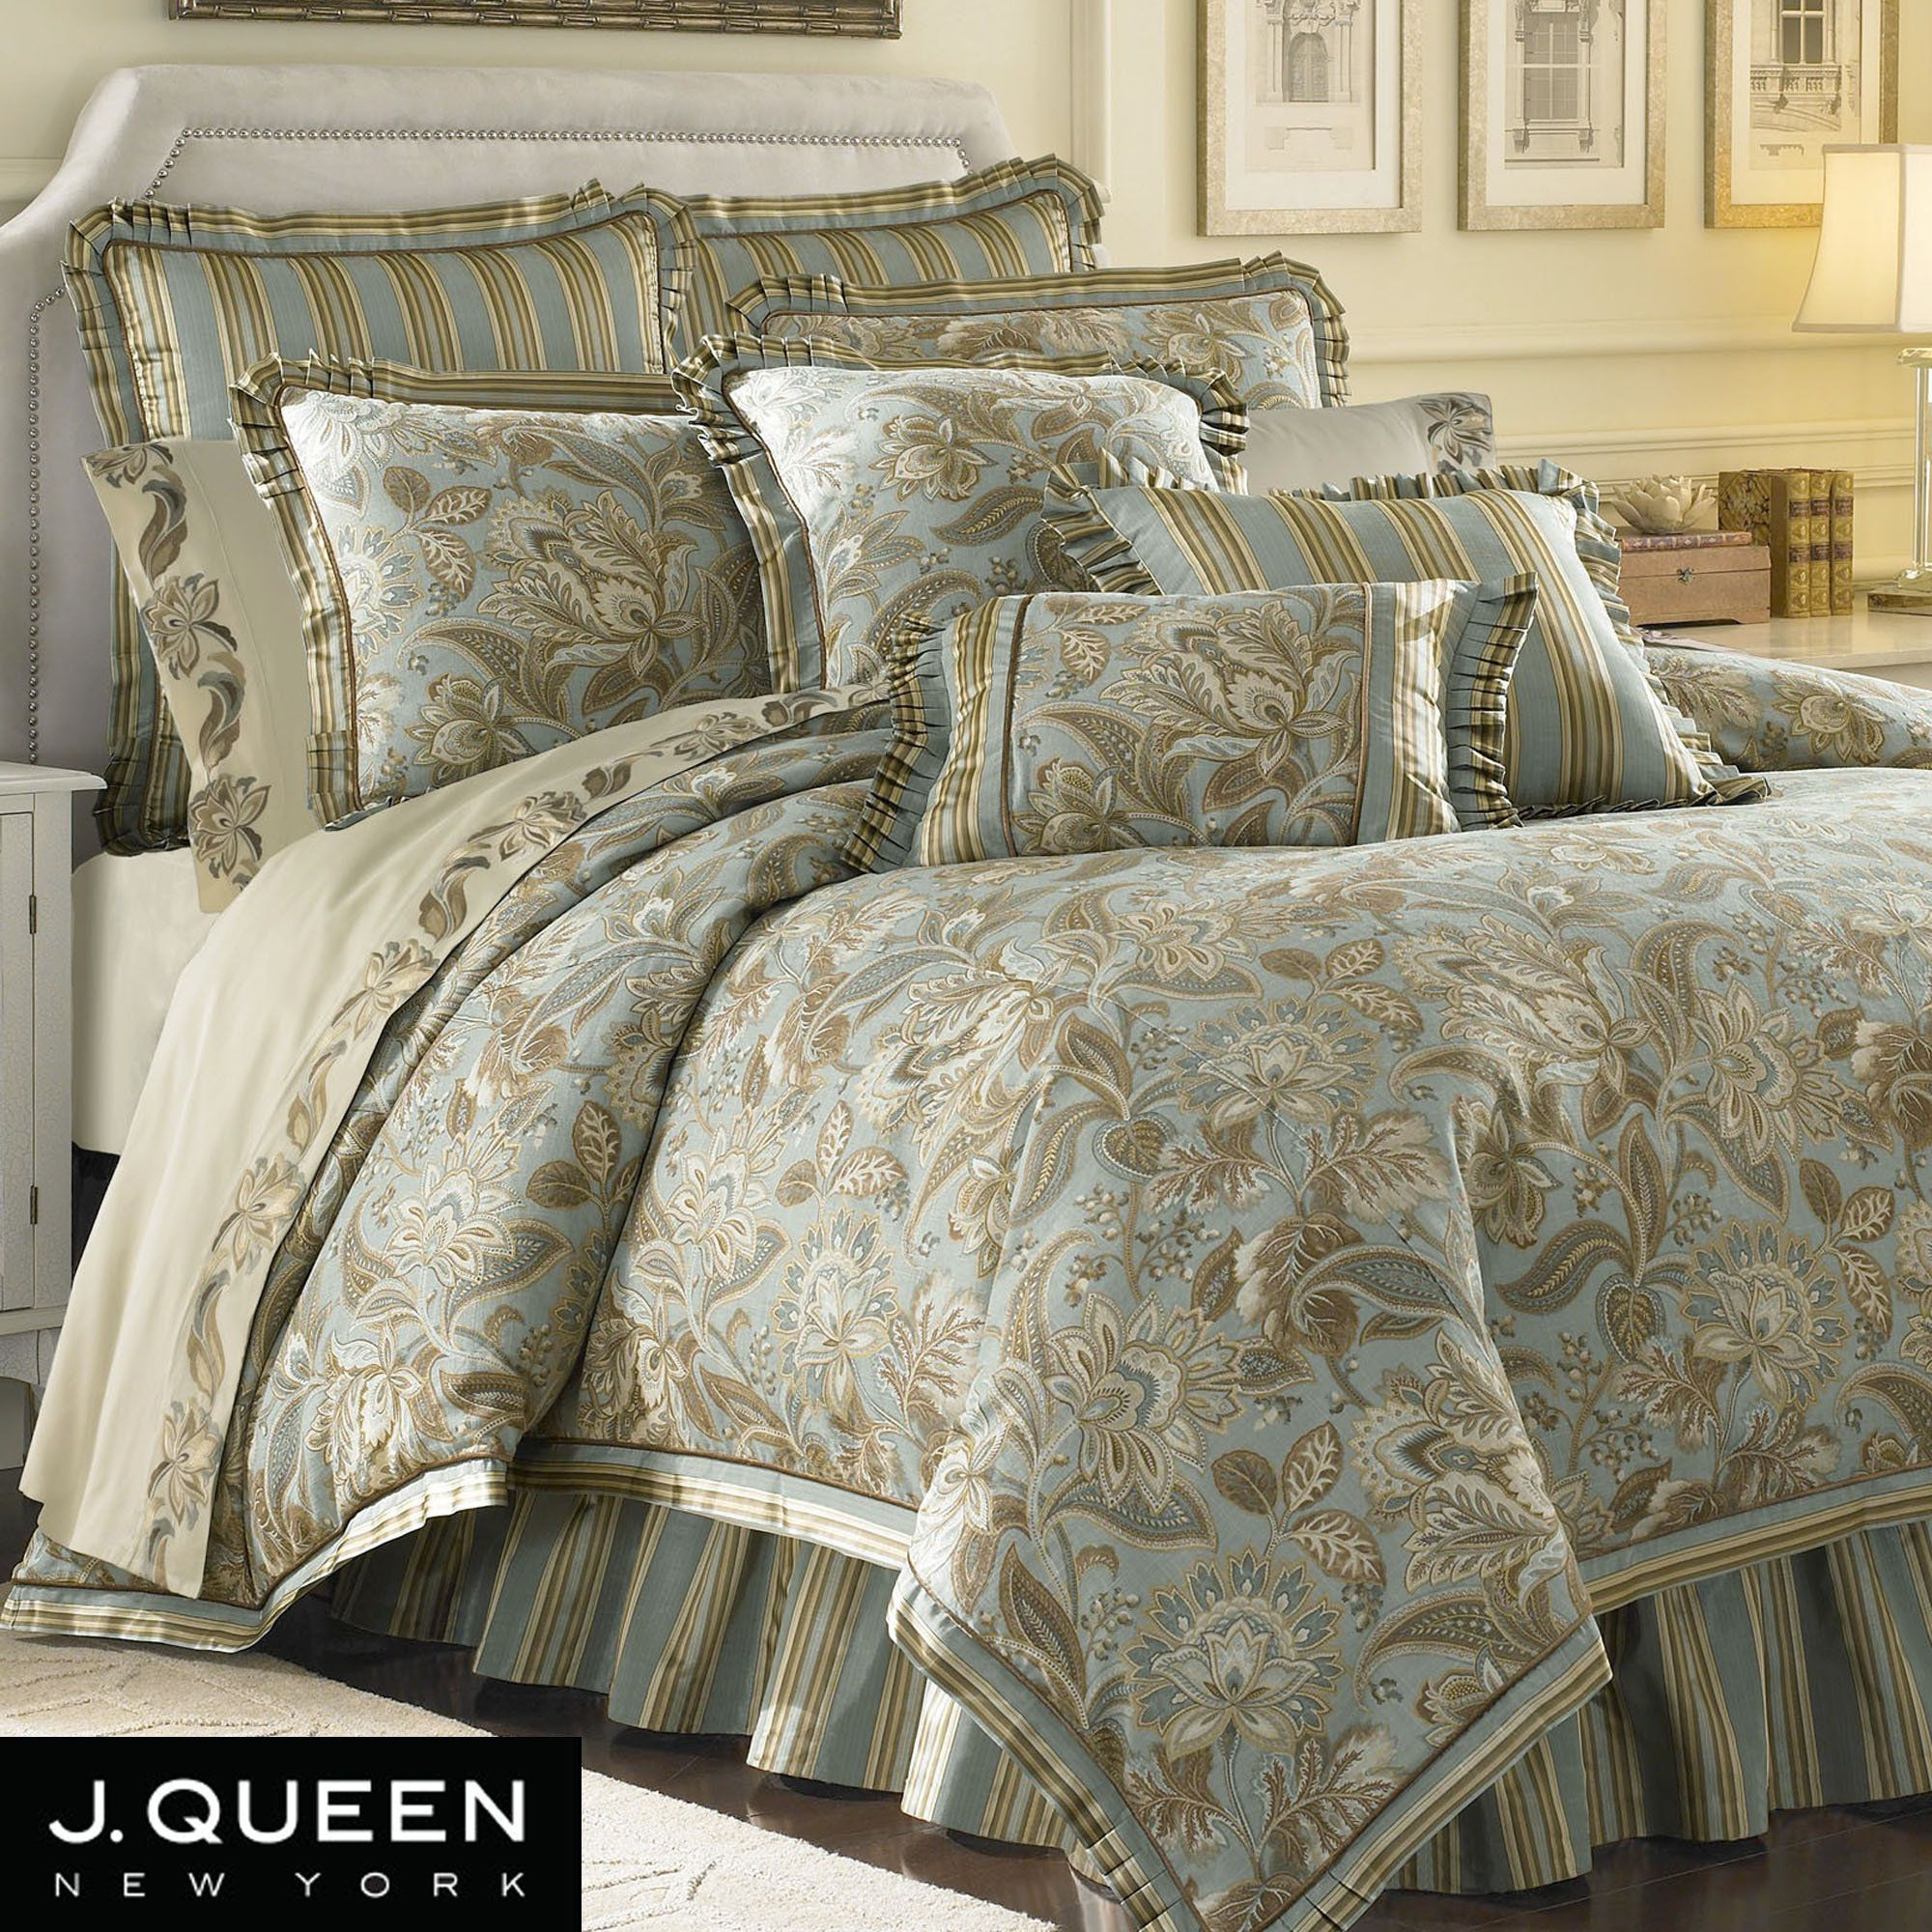 off quilt set also queen burlap together with ruffle lauren colored cream of beddings chic full comforter bedding bed conrad as allie size sets bouquet shabby duvet in white nursery plus well bedspreads conjunction